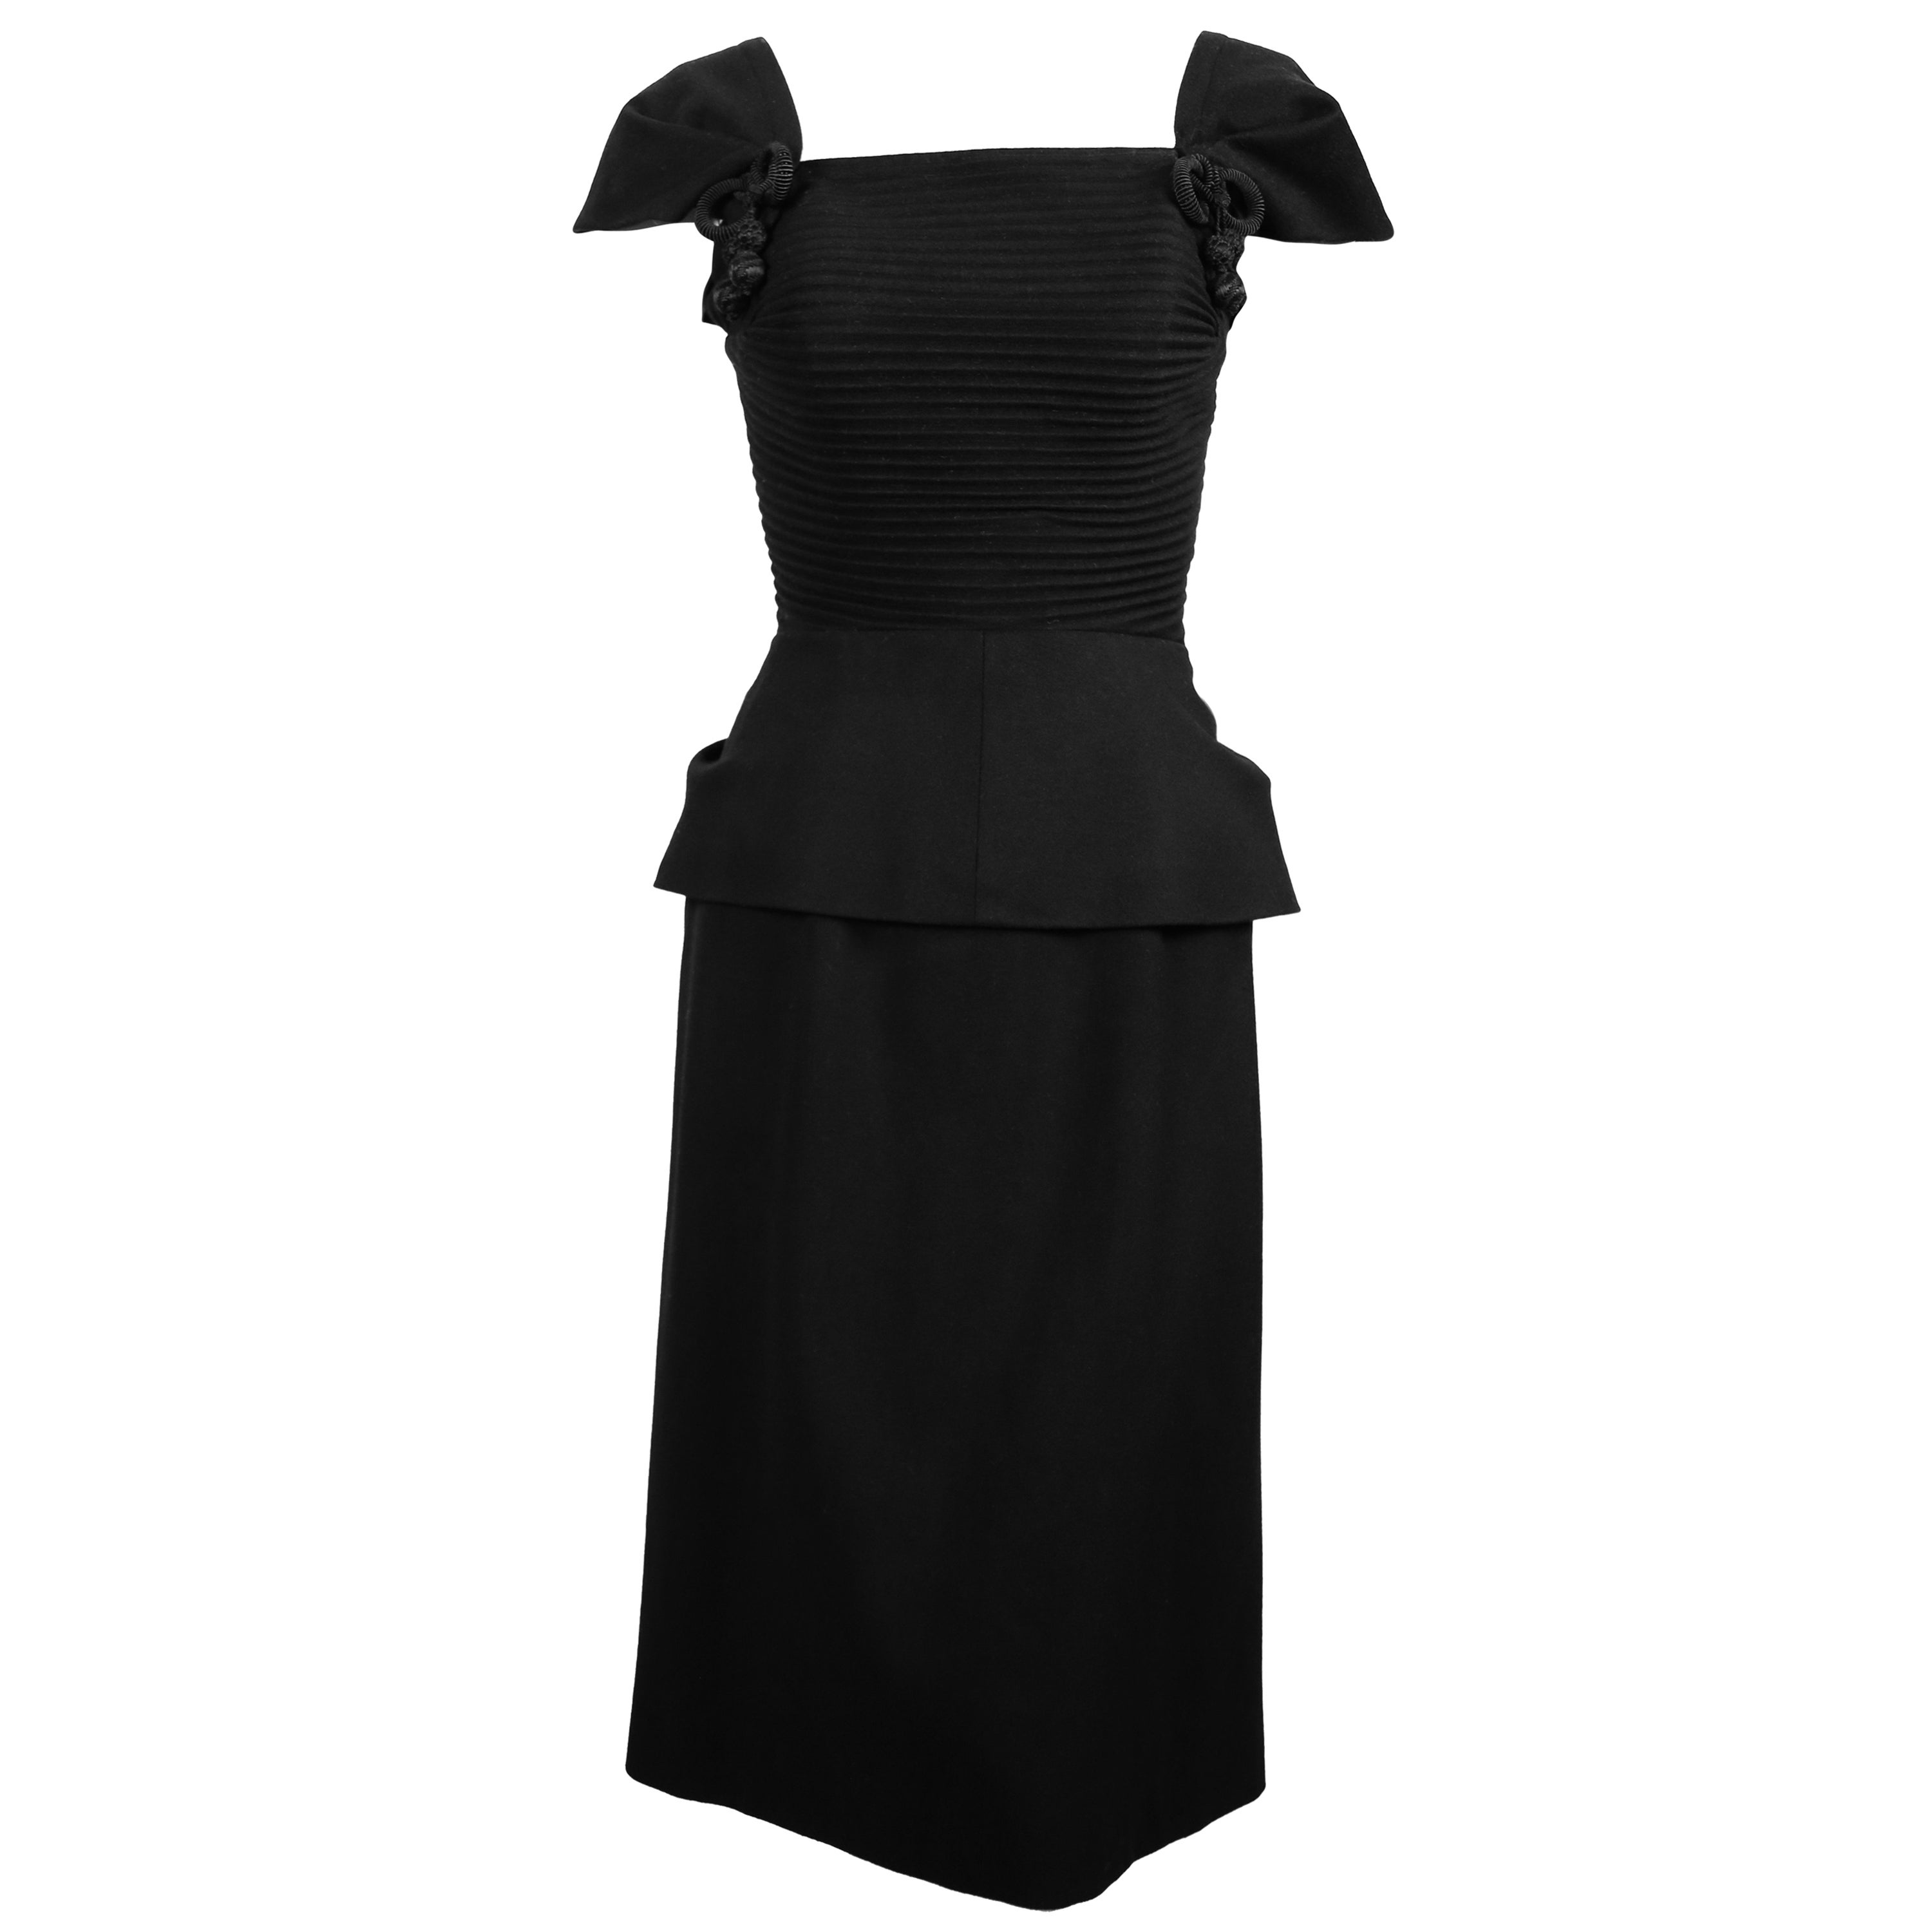 1940's HOUSE OF WORTH black wool haute couture dress